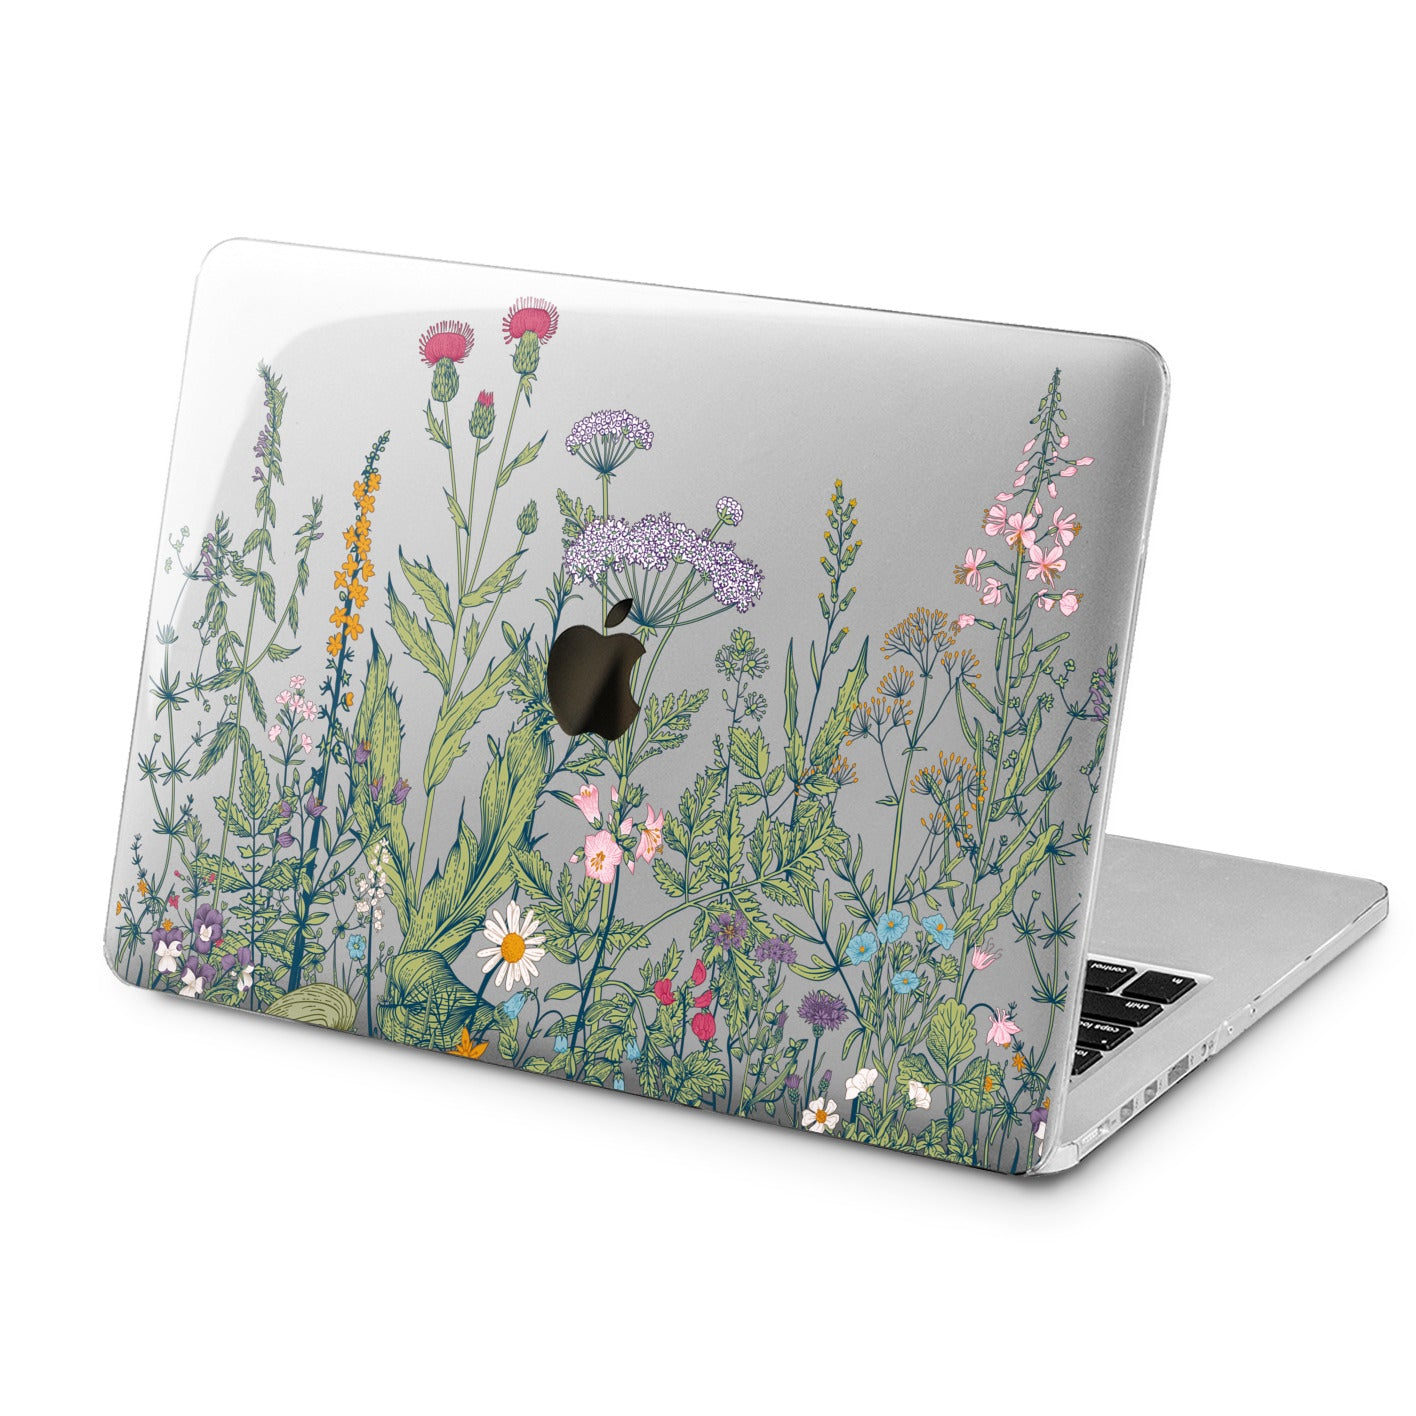 Lex Altern Lex Altern Wild Flowers Case for your Laptop Apple Macbook.